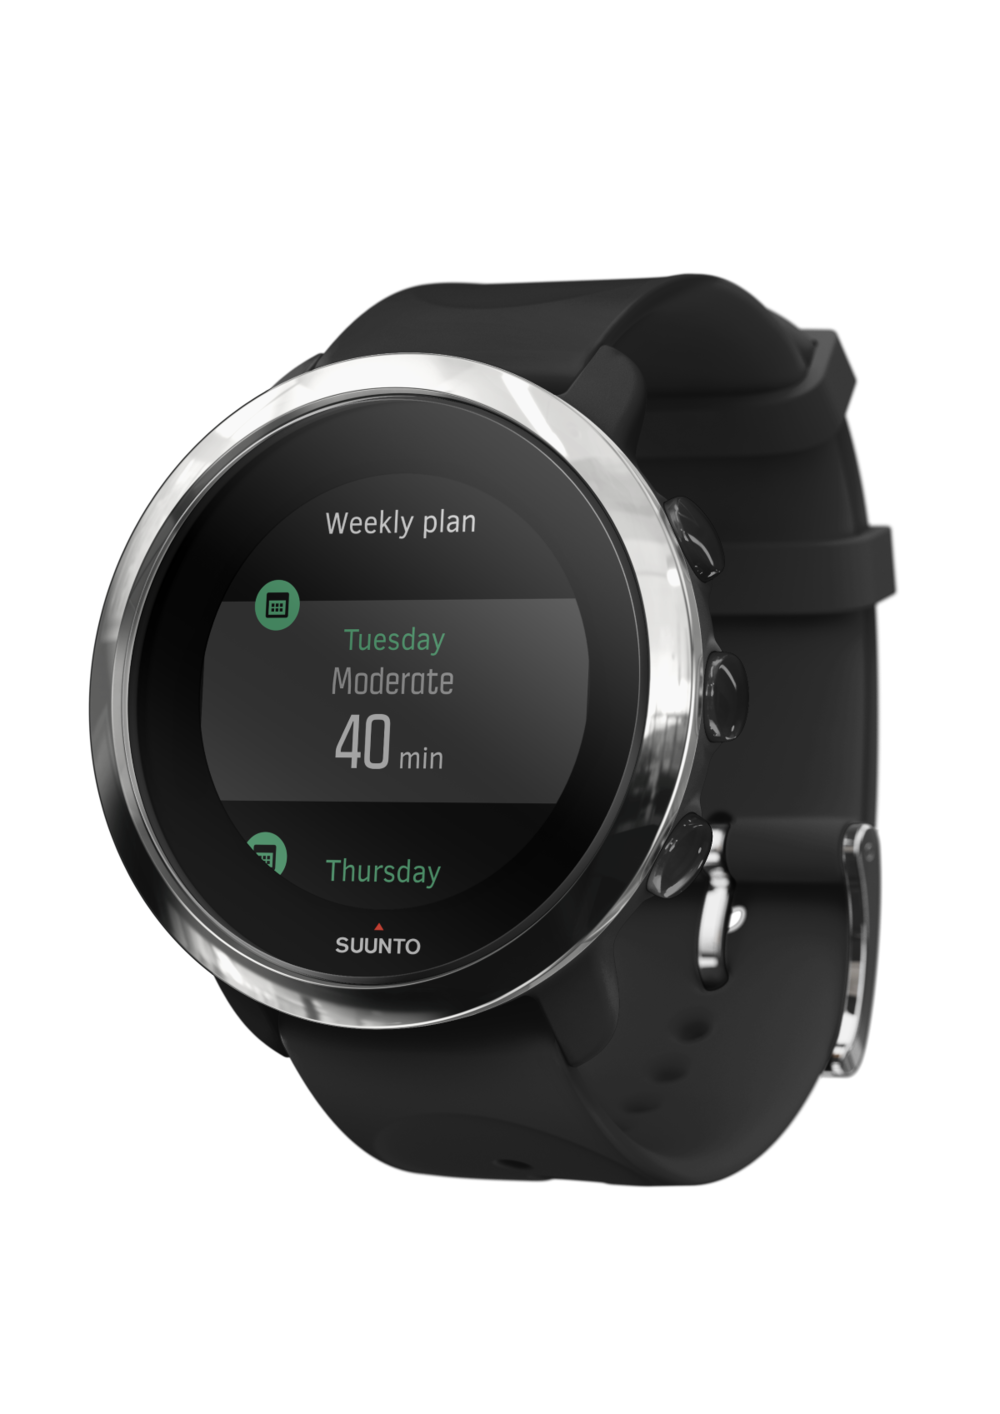 Suunto_3_Fitness_perspective-black-weekly-151217.png